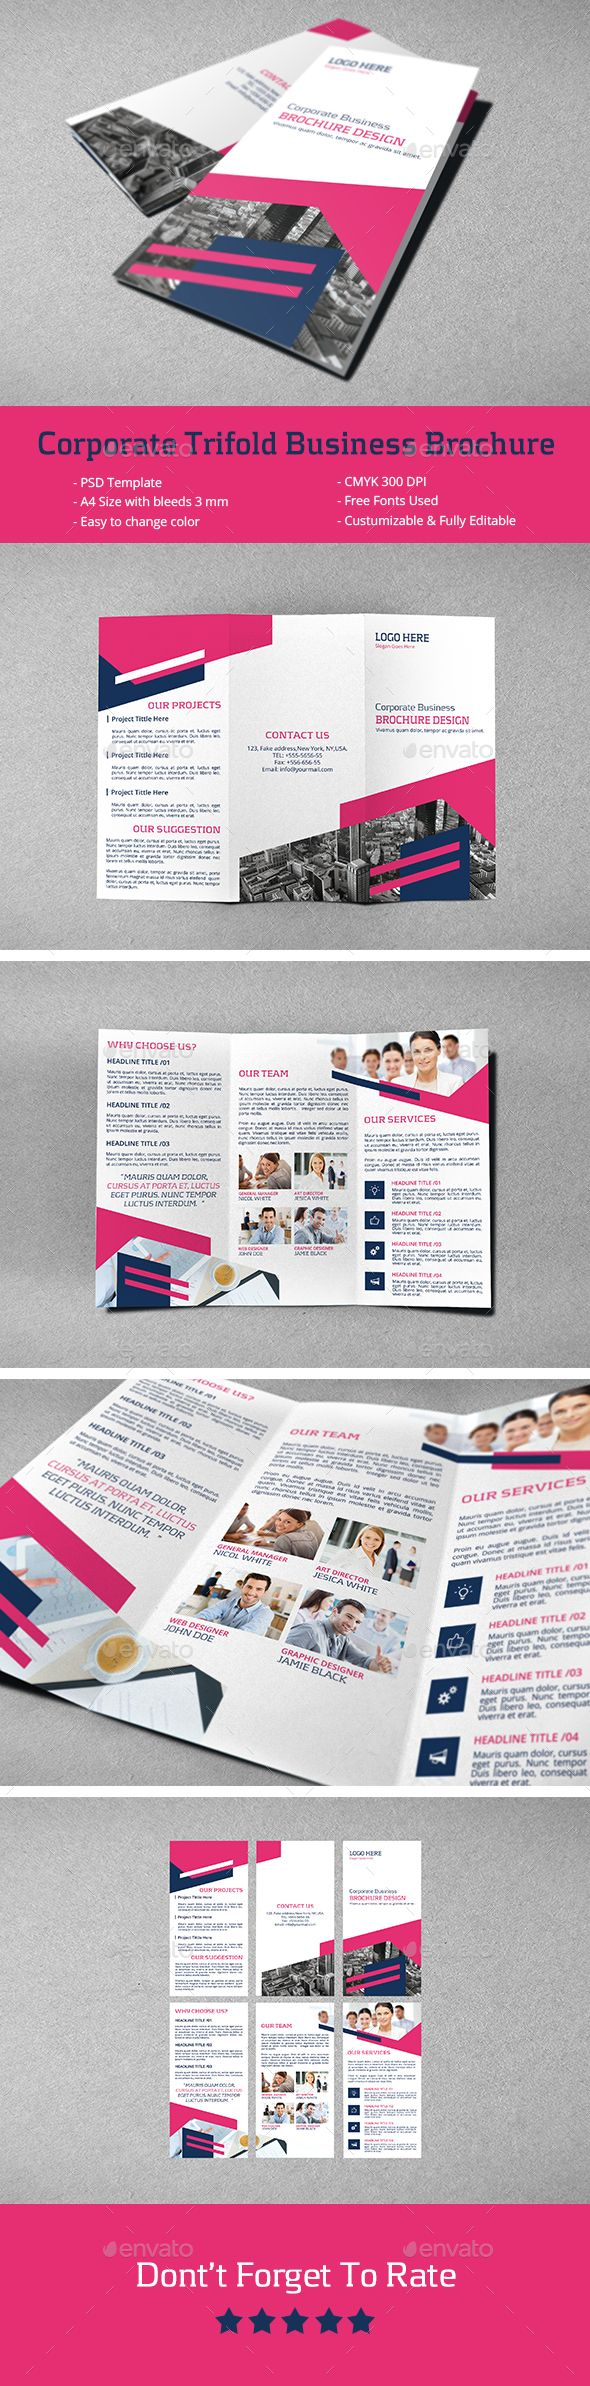 Corporate Trifold Business Brochure Template PSD #design Download: http://graphicriver.net/item/corporate-trifold-business-brochure/14334147?ref=ksioks